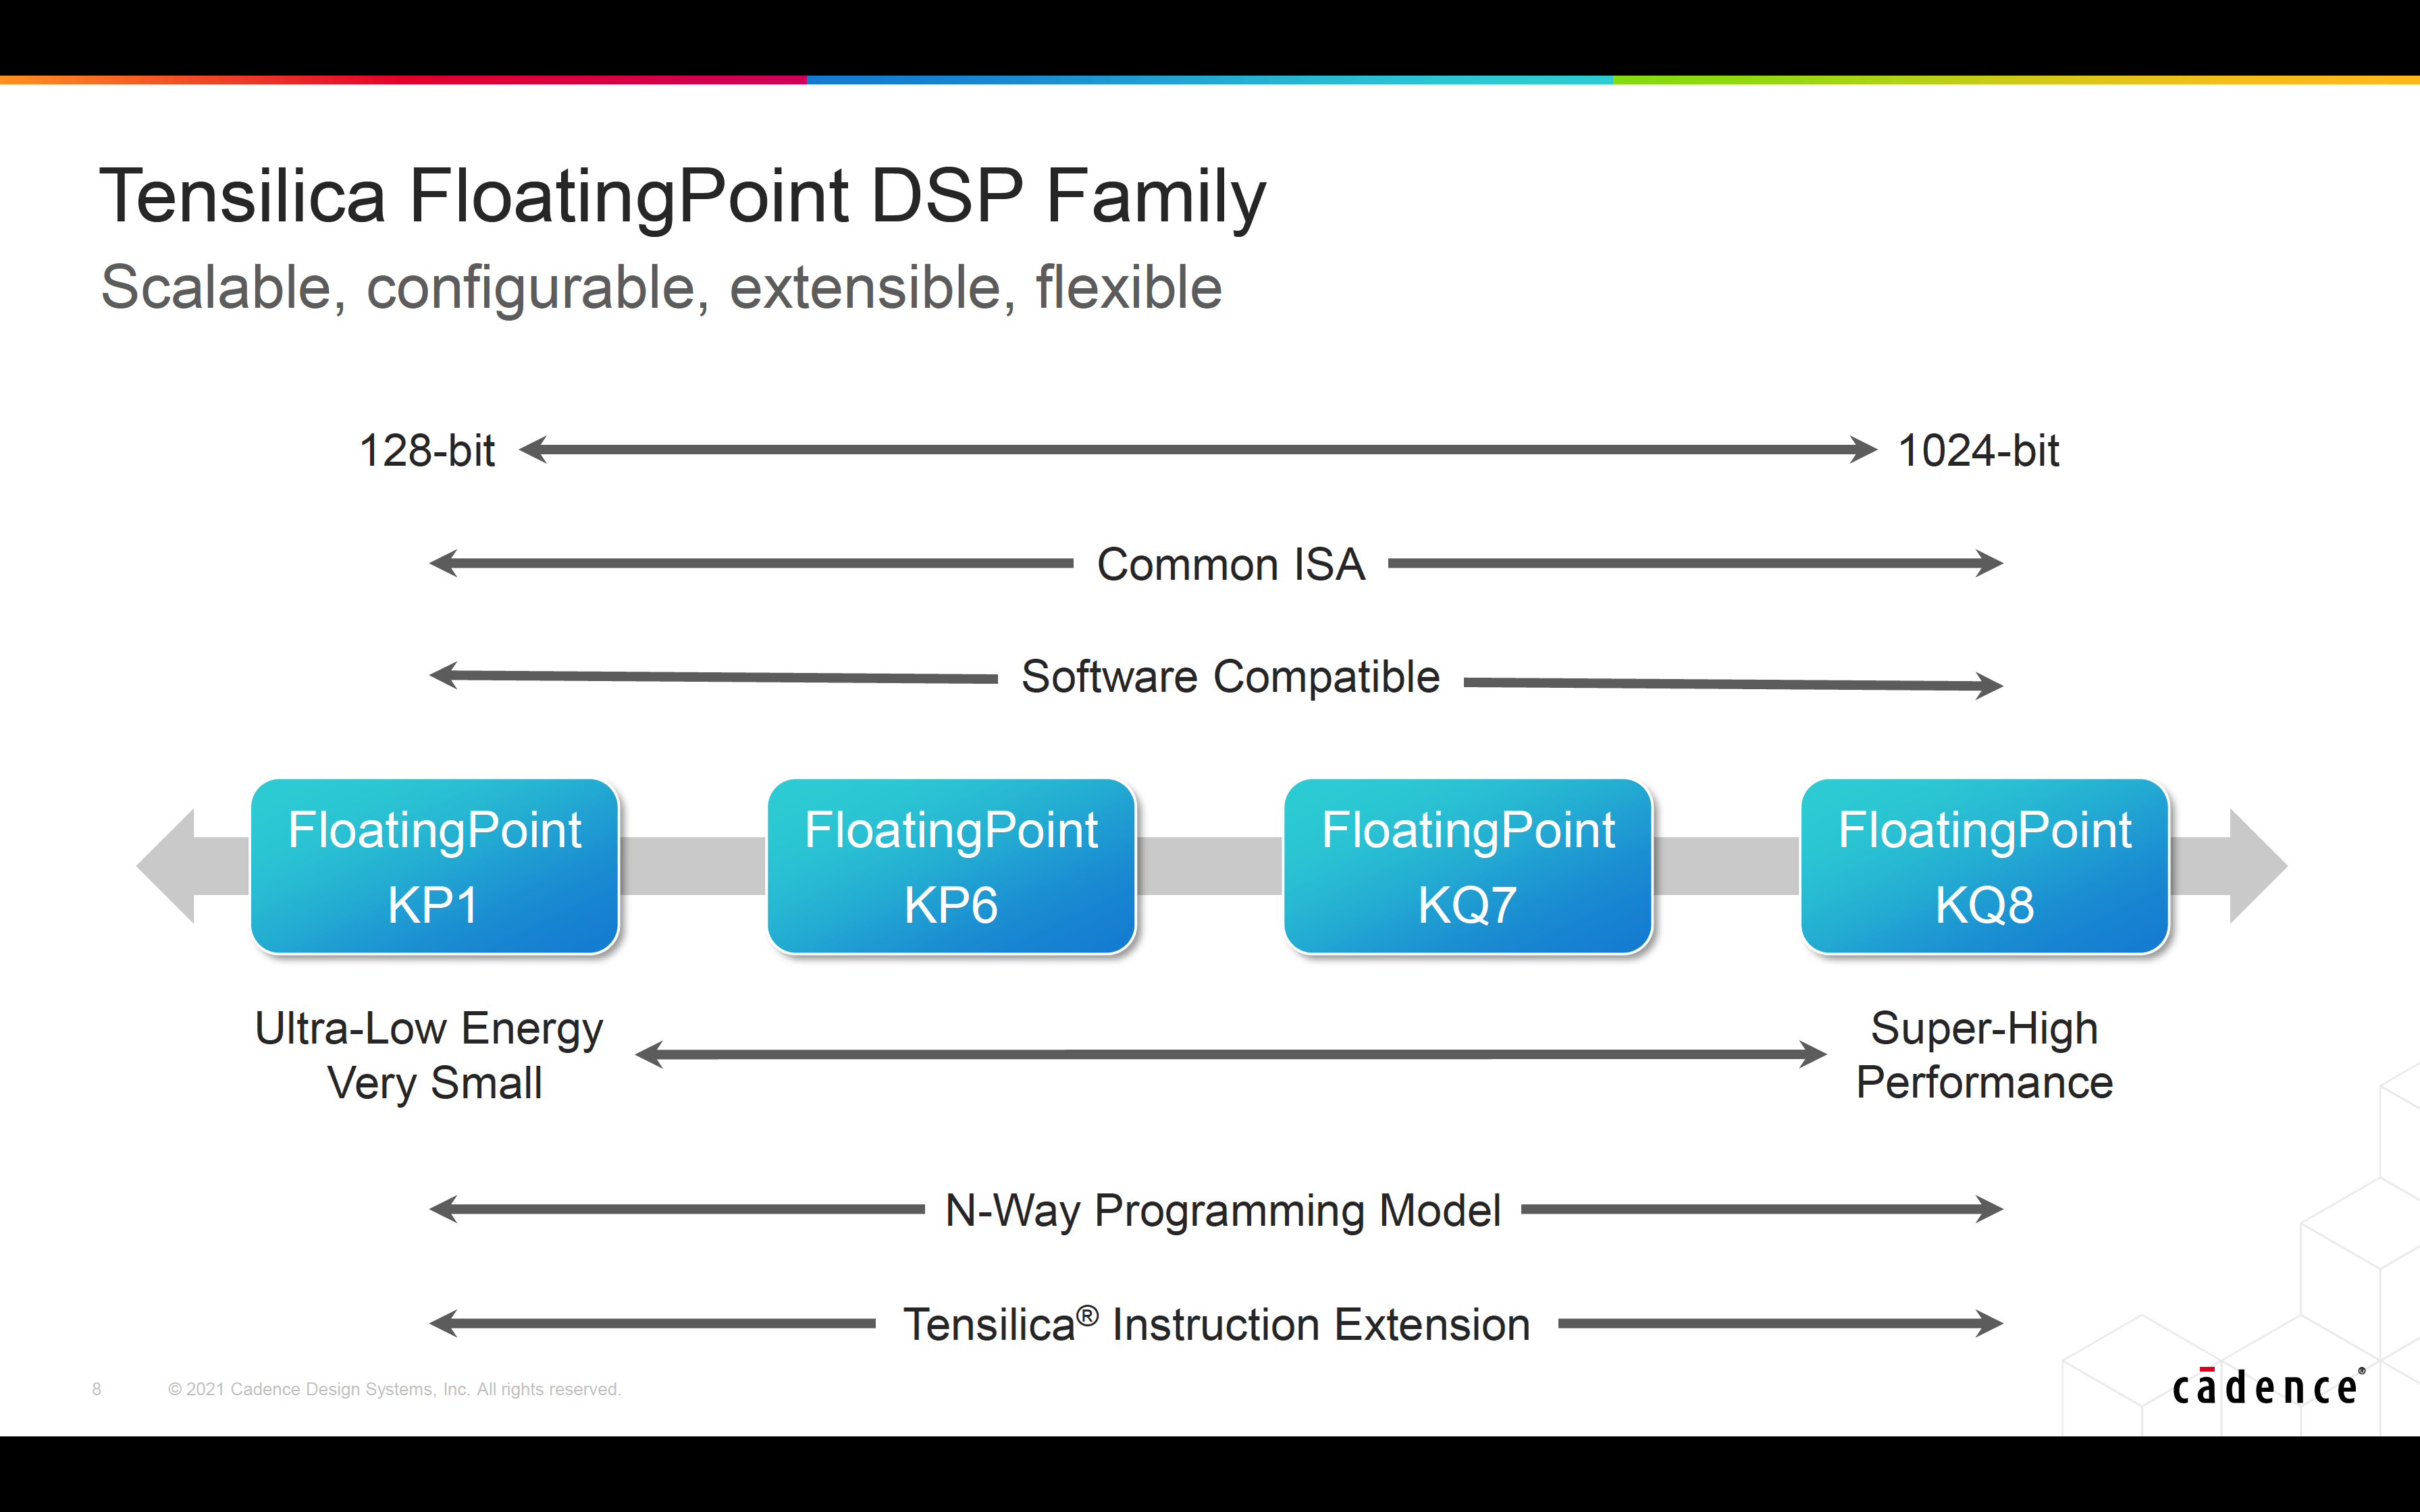 Tensilica FP DSPs Scalable Configurable Extensible